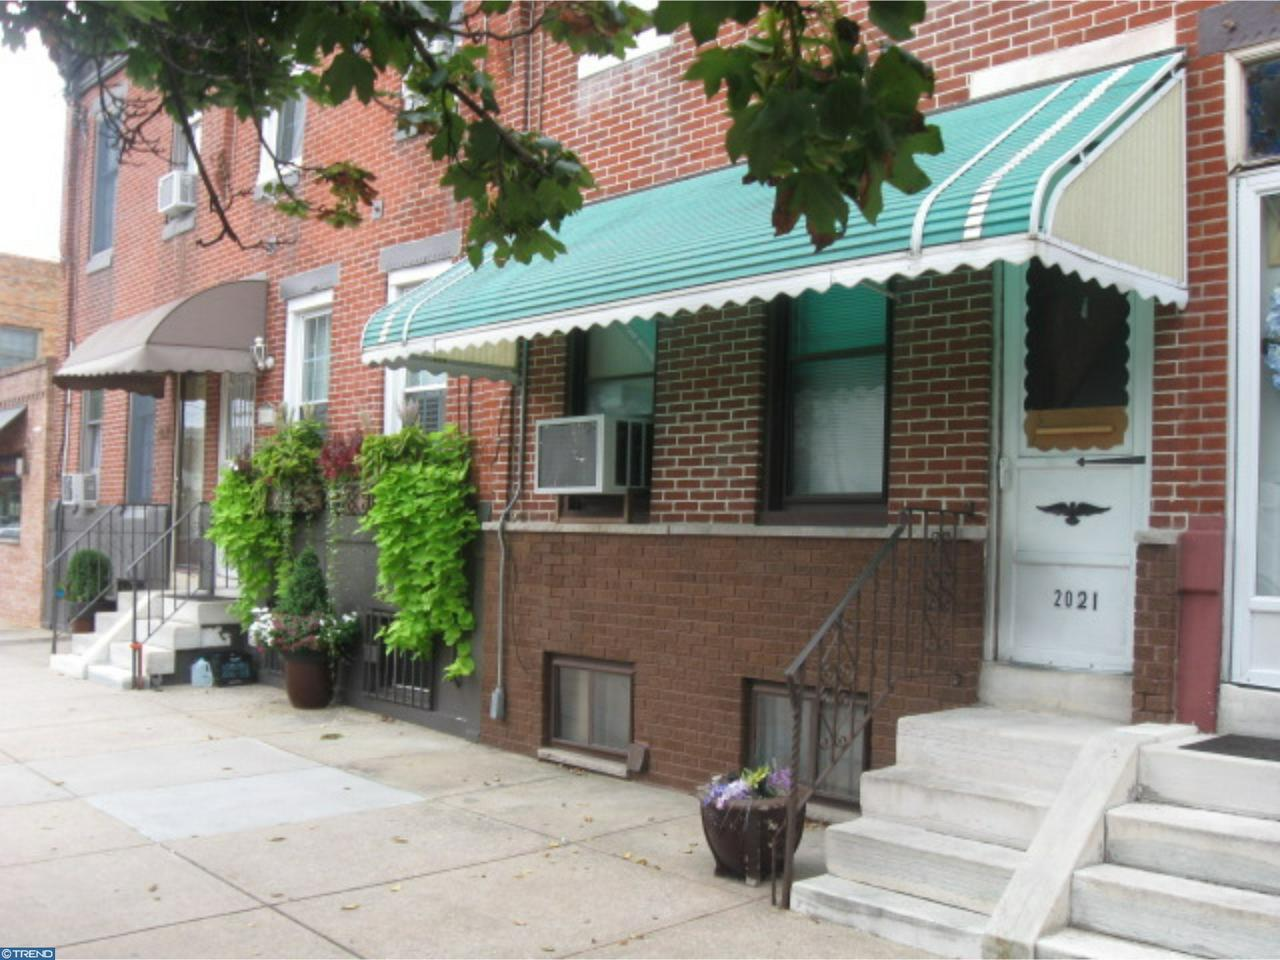 2021 E Moyamensing Avenue Philadelphia Pa 19148 Real Estate